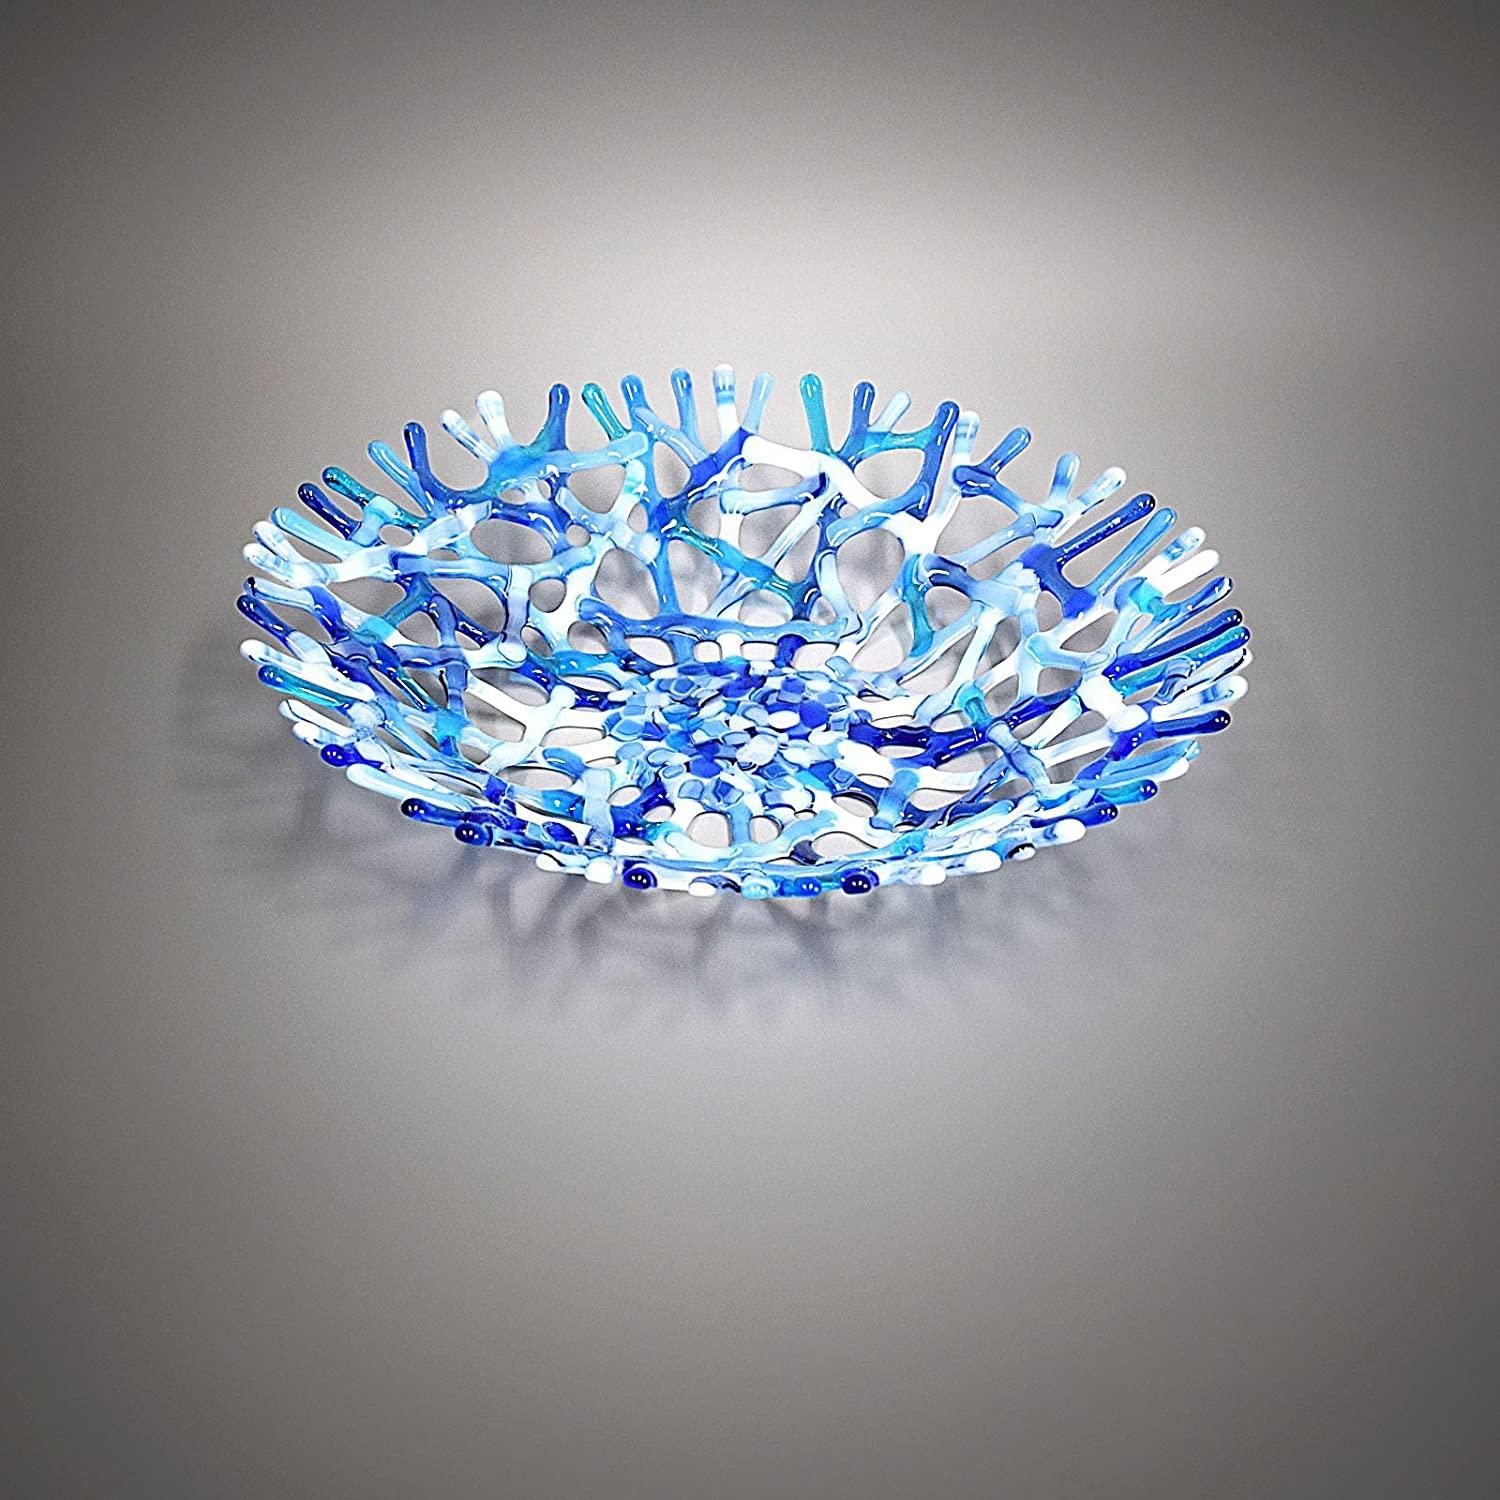 Lacy Glass Art Sea Coral Decorative Fruit Bowl in Soft Gray Blue and White